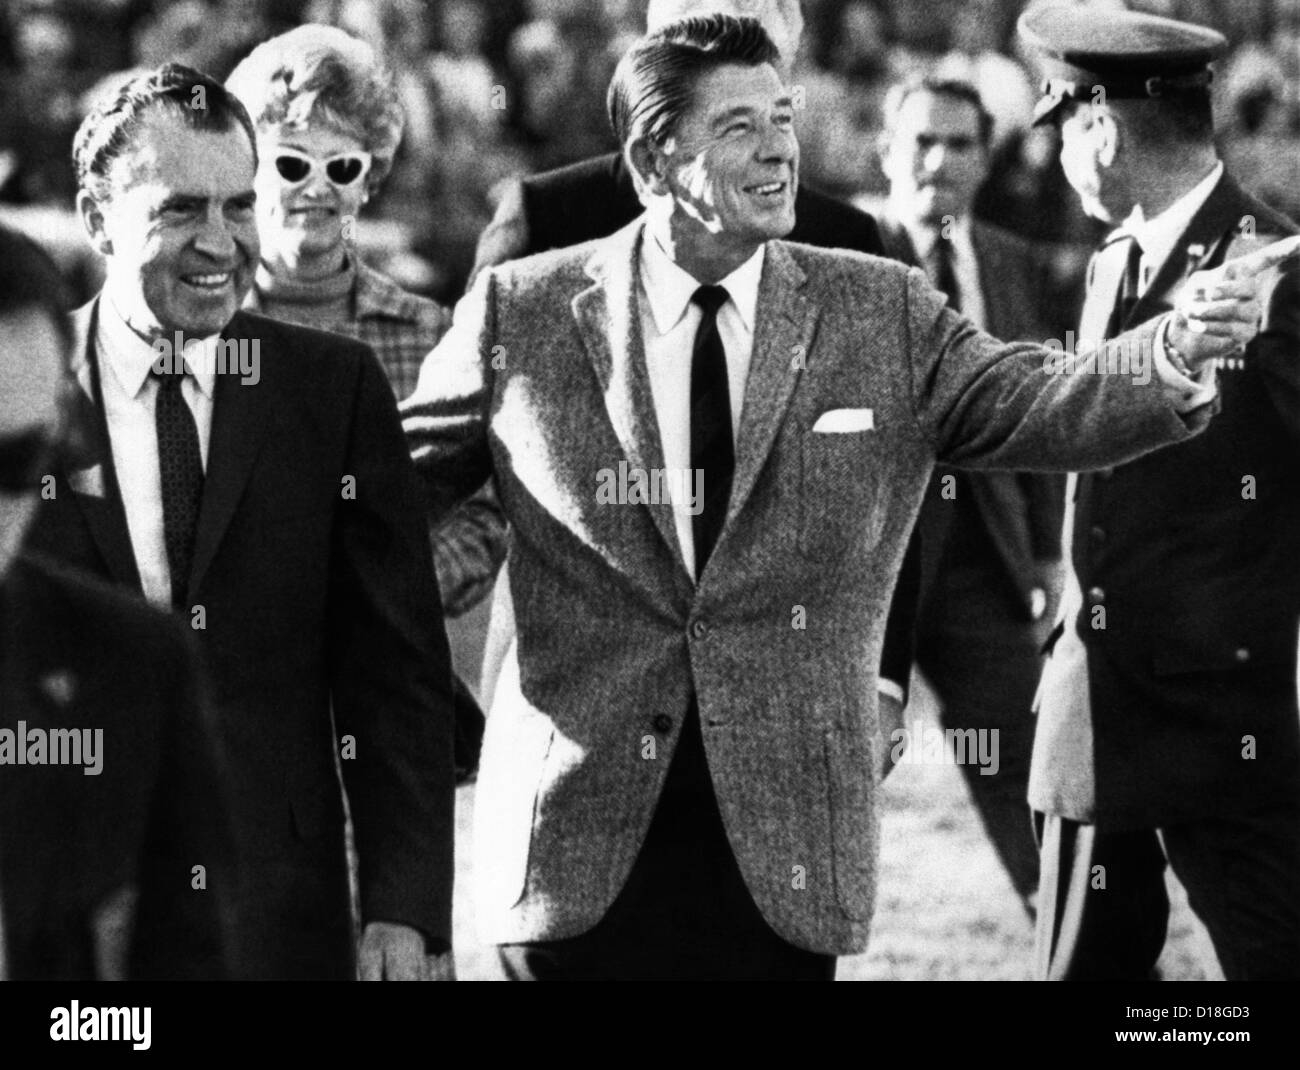 richard nixon vs ronald reagan Essay on ronald reagan essay on ronald reagan biography of president ronald wilson reagan we will look at richard nixon's and ronald reagan's life before.